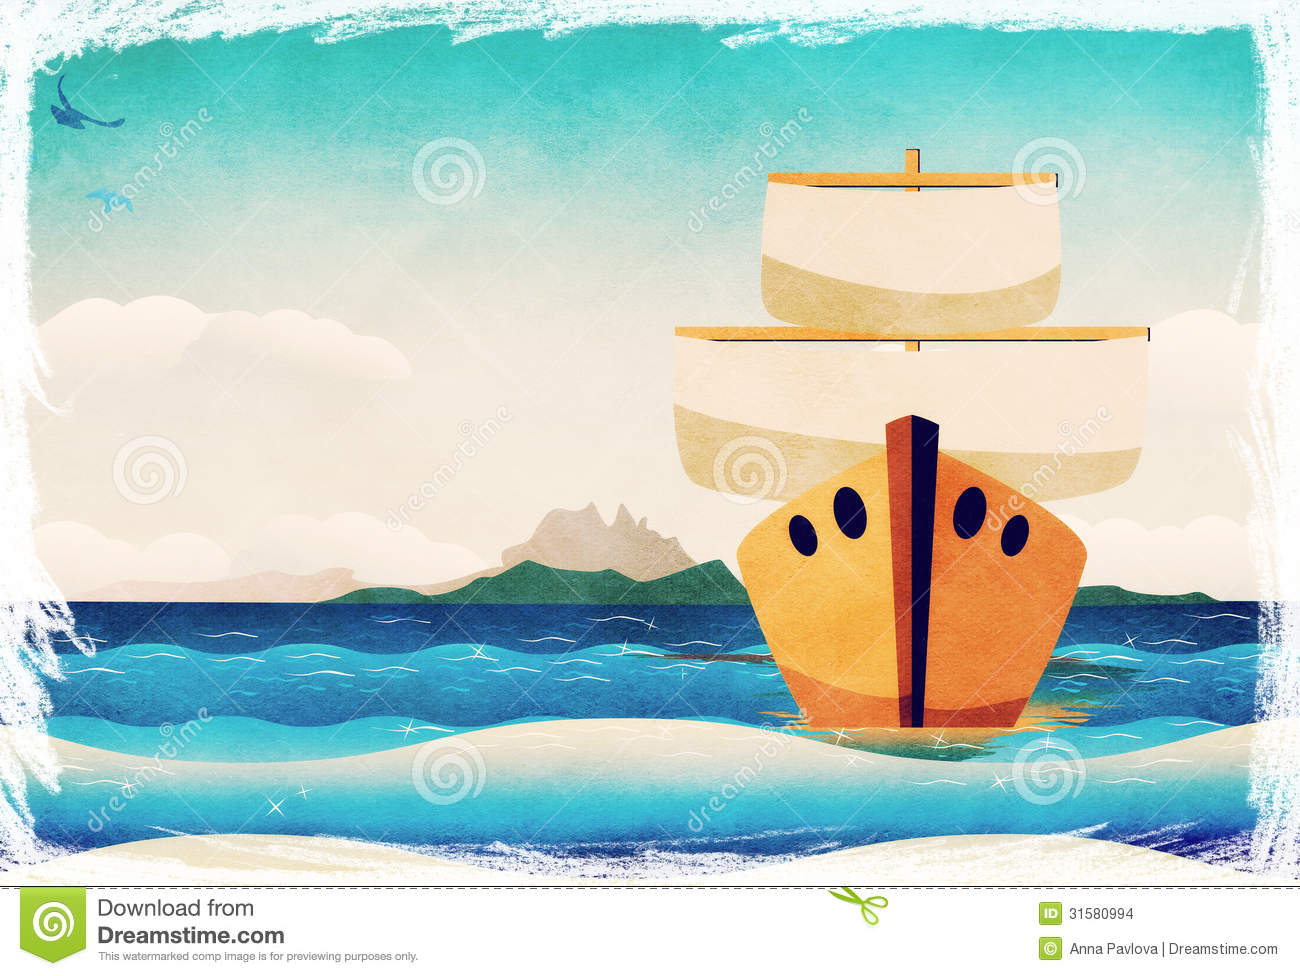 Cartoon Boat In The Sea Stock Images - Image: 31580994